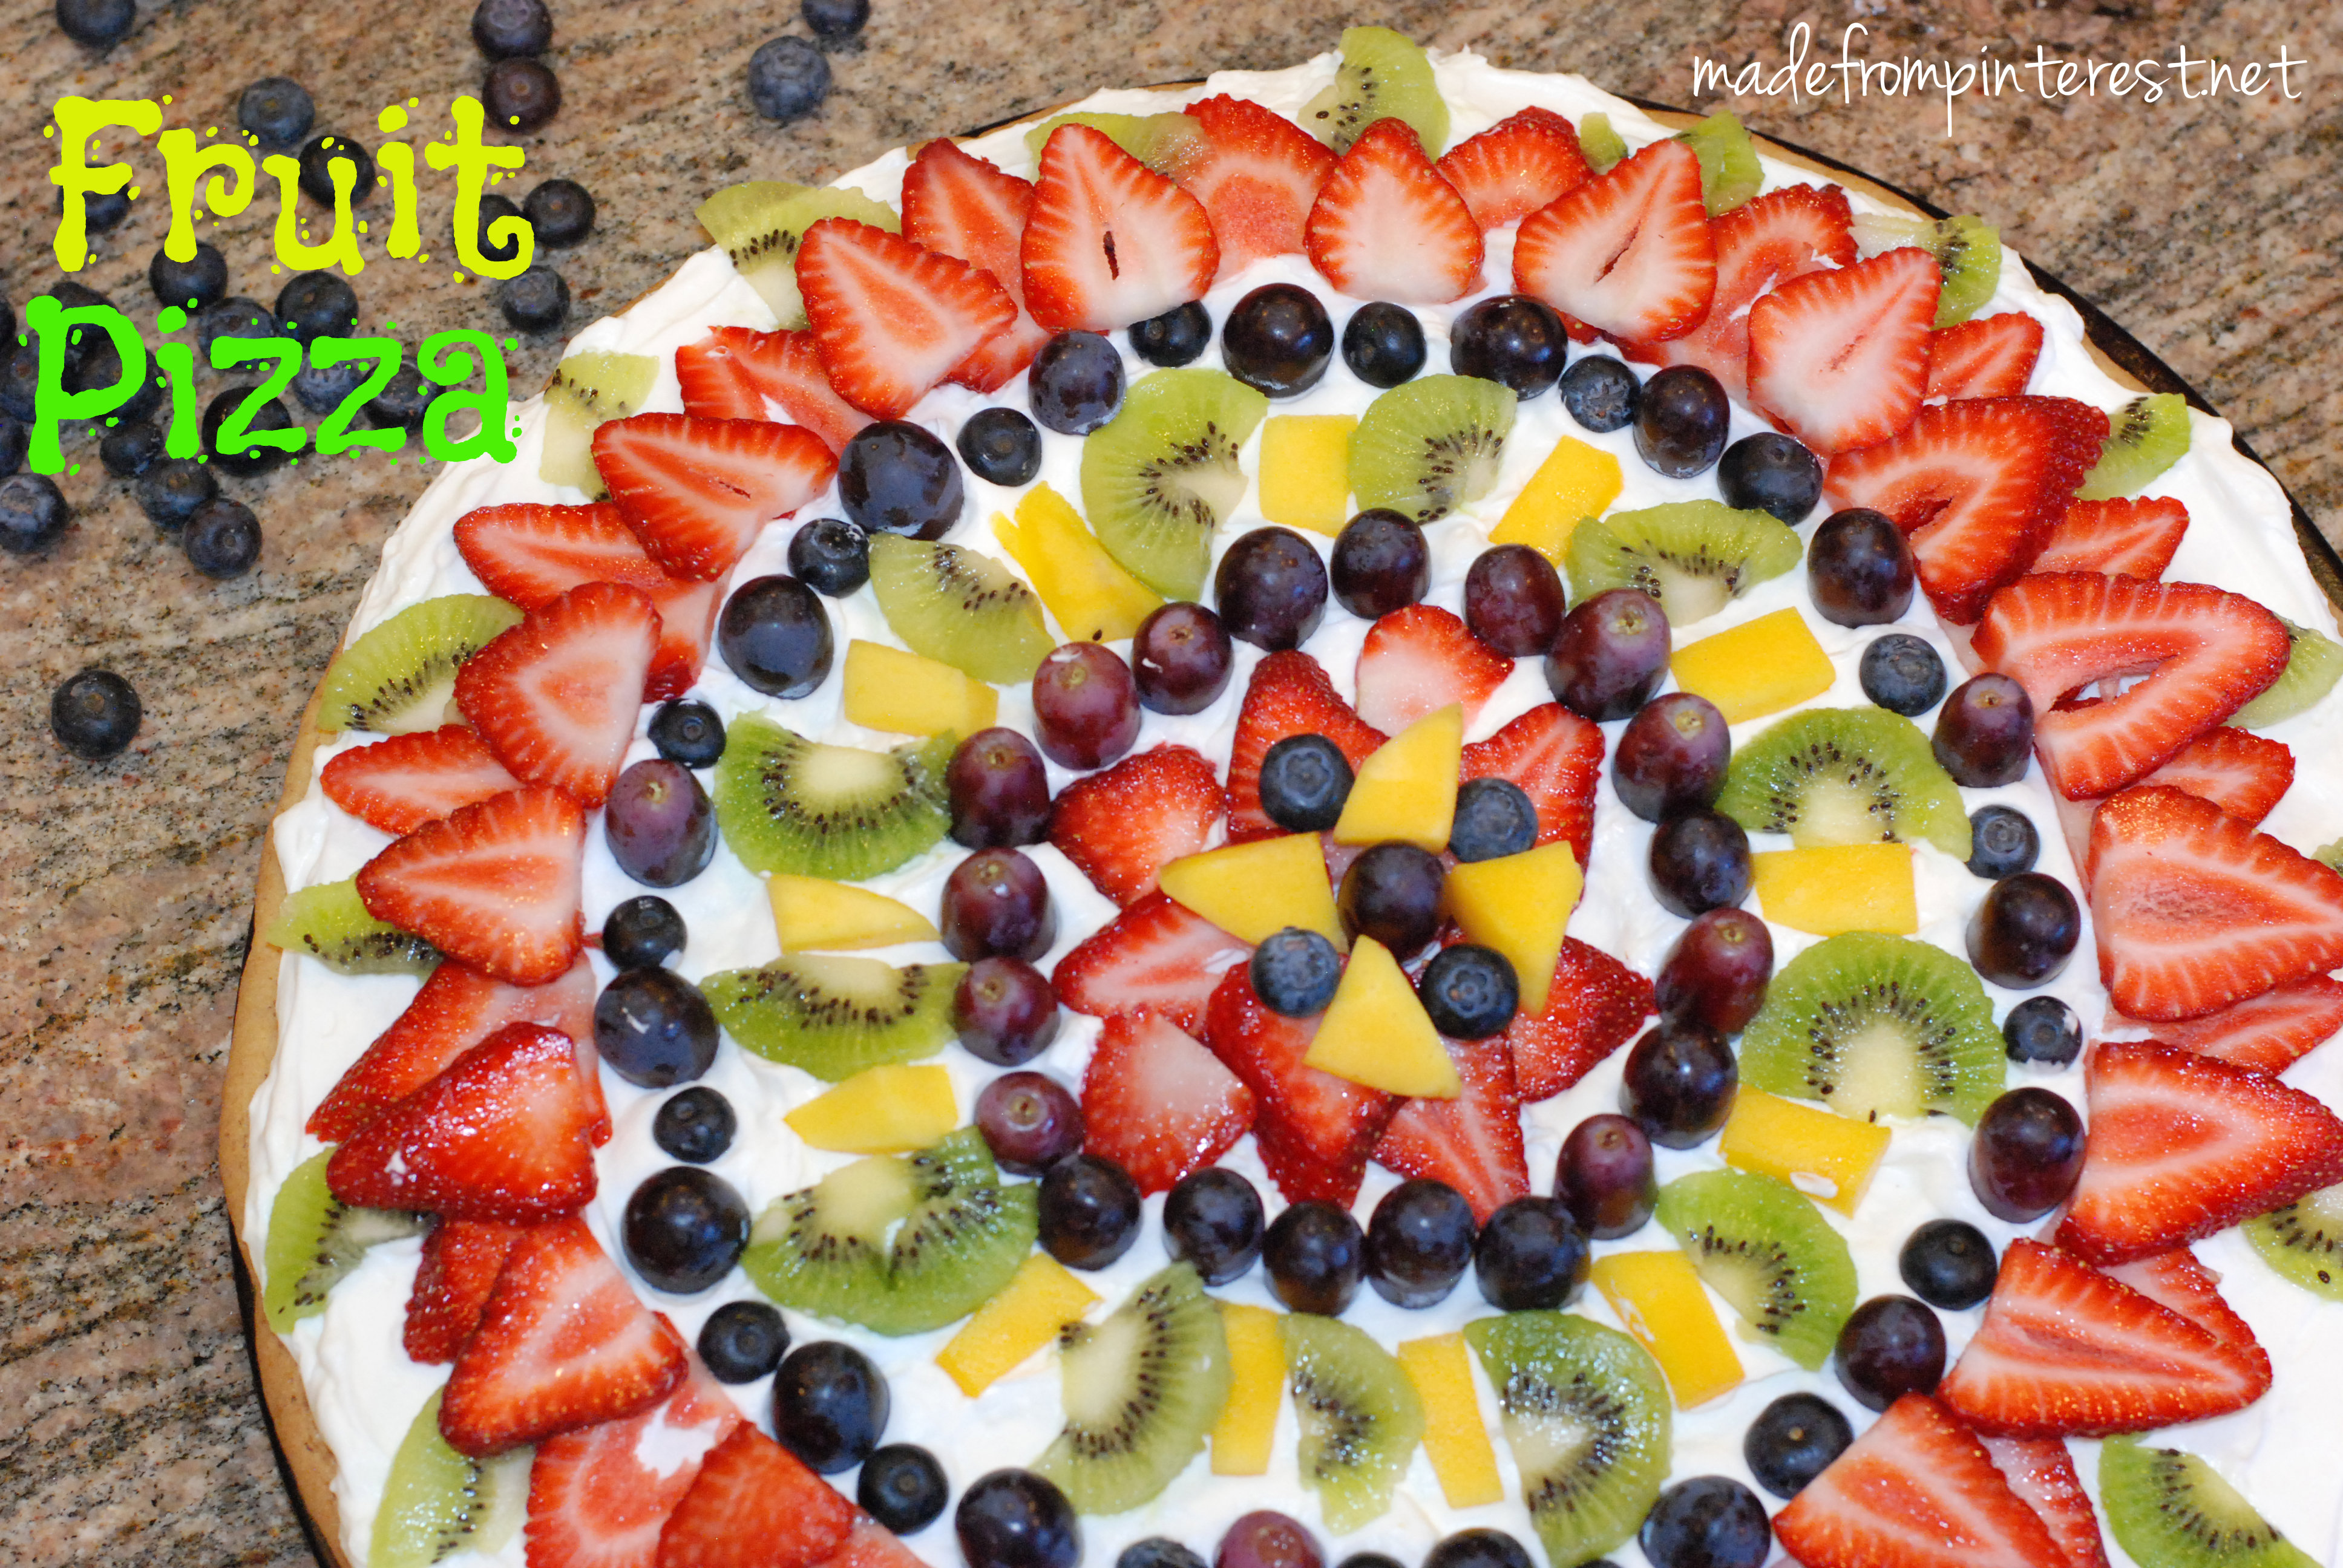 ... Fruit Pizza because so much of the fruit is available fresh. Isn't